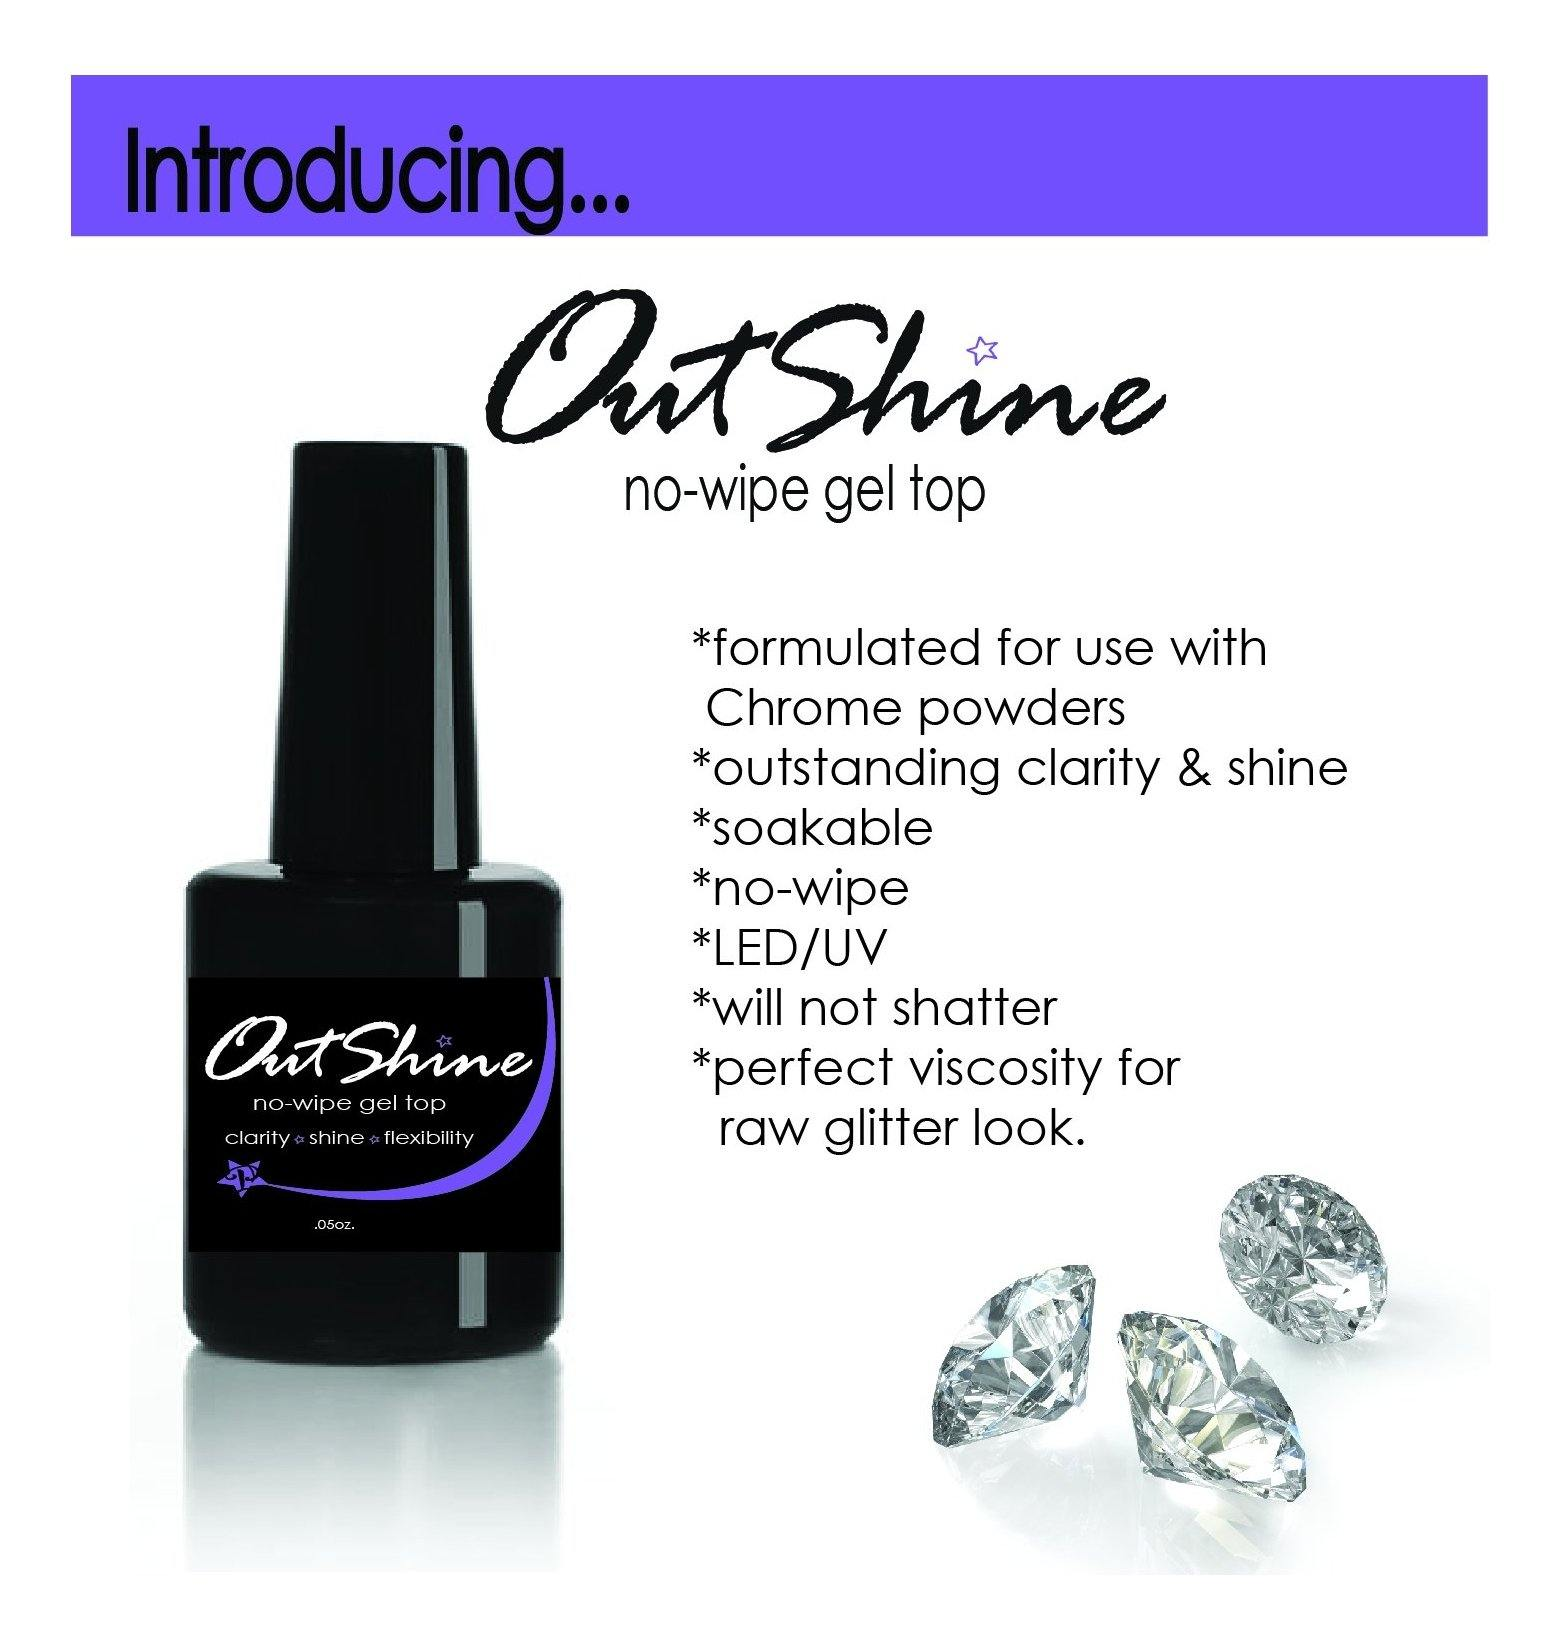 Profiles Outshine Specialty Gel for Chromes-Gel Essentialz